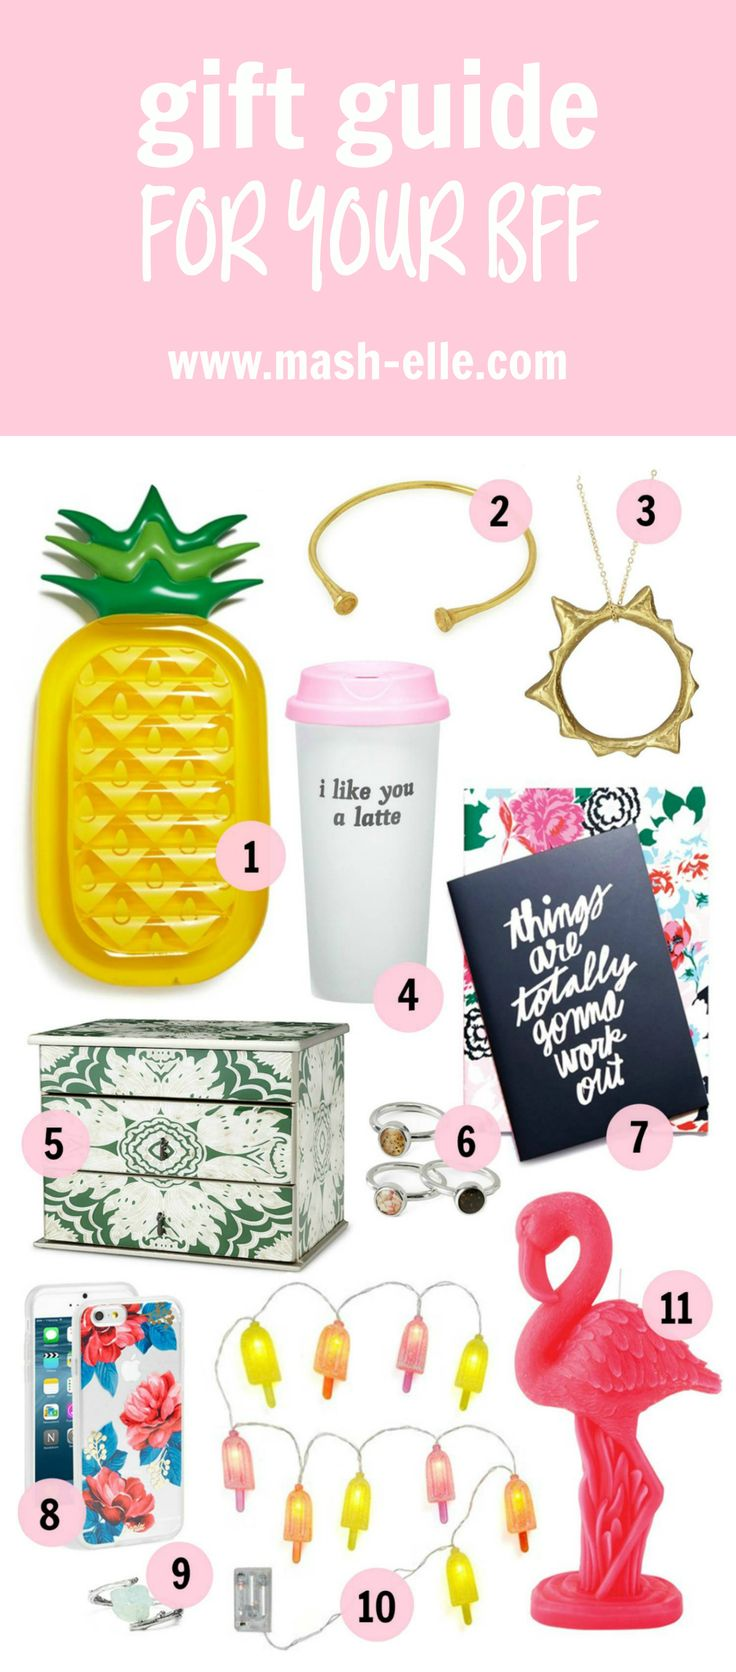 Handpicked gifts for daughter recommended by gift experts. Find the best gifts for Curated Gift Ideas · Gifts By Trusted Brands · Handpicked Gift Ideas · One-Of-A-Kind GiftsTypes: Experience Gift, Personalized Gifts, Unique Gifts, Stocking Stuffer Gifts.